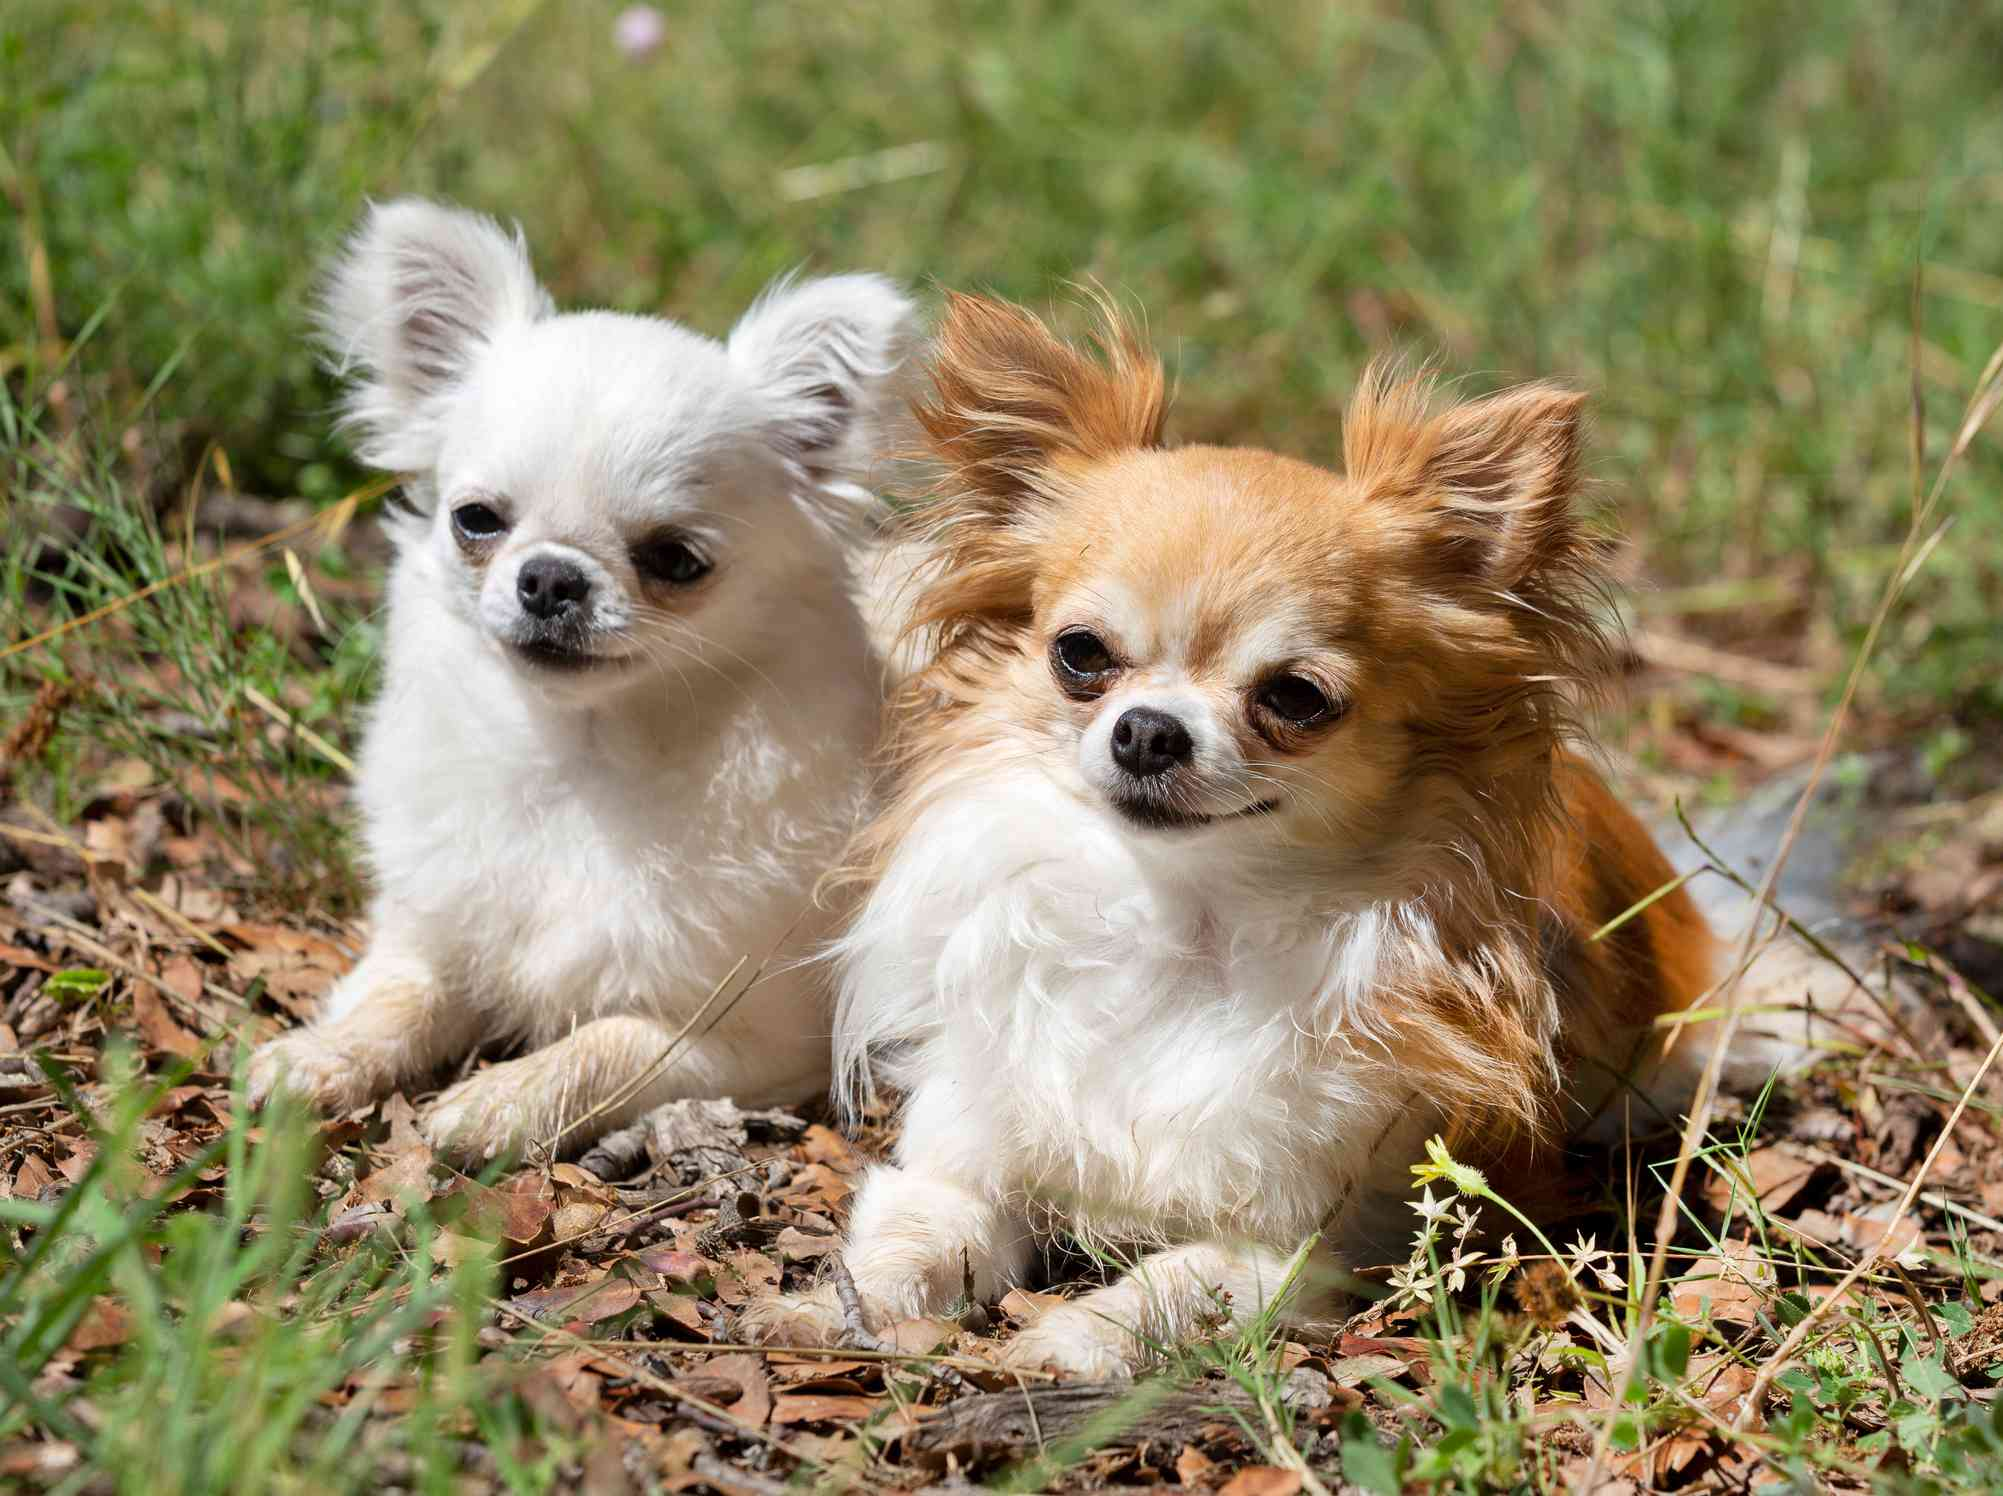 Two long-haired chihuahuas sitting outside